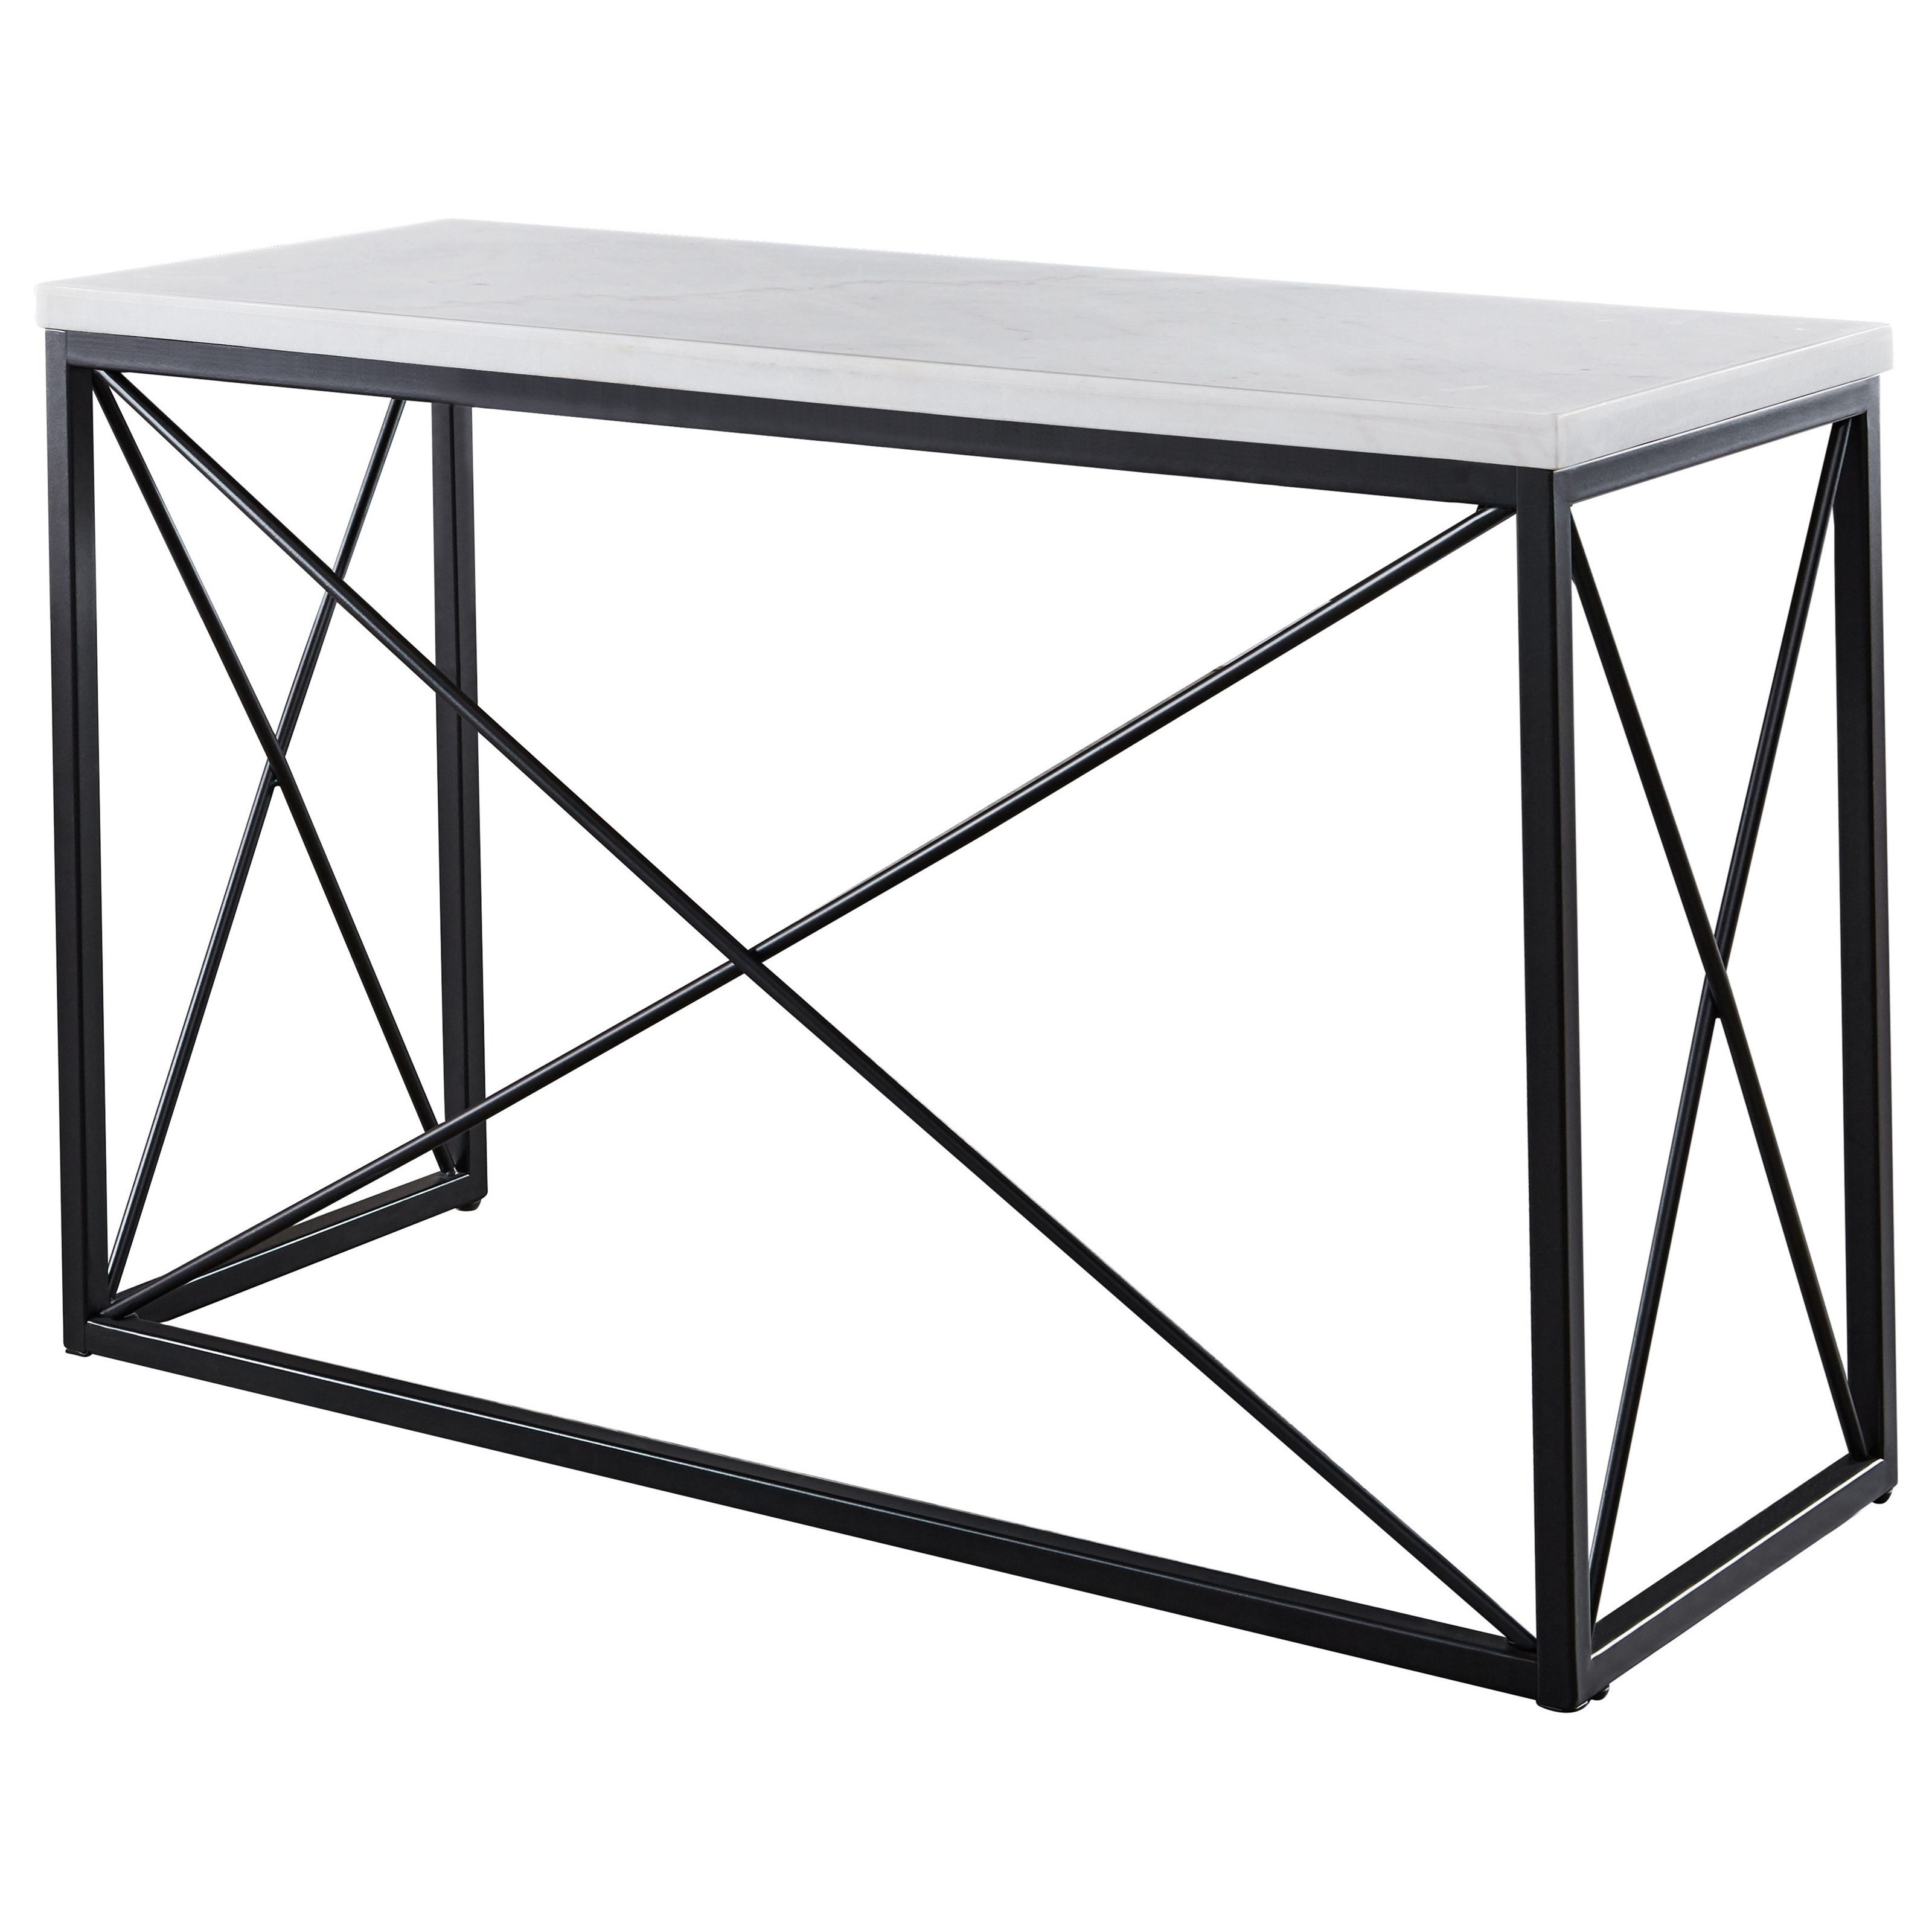 Skyler White Marble Top Rectangle Sofa Table by Steve Silver at Walker's Furniture